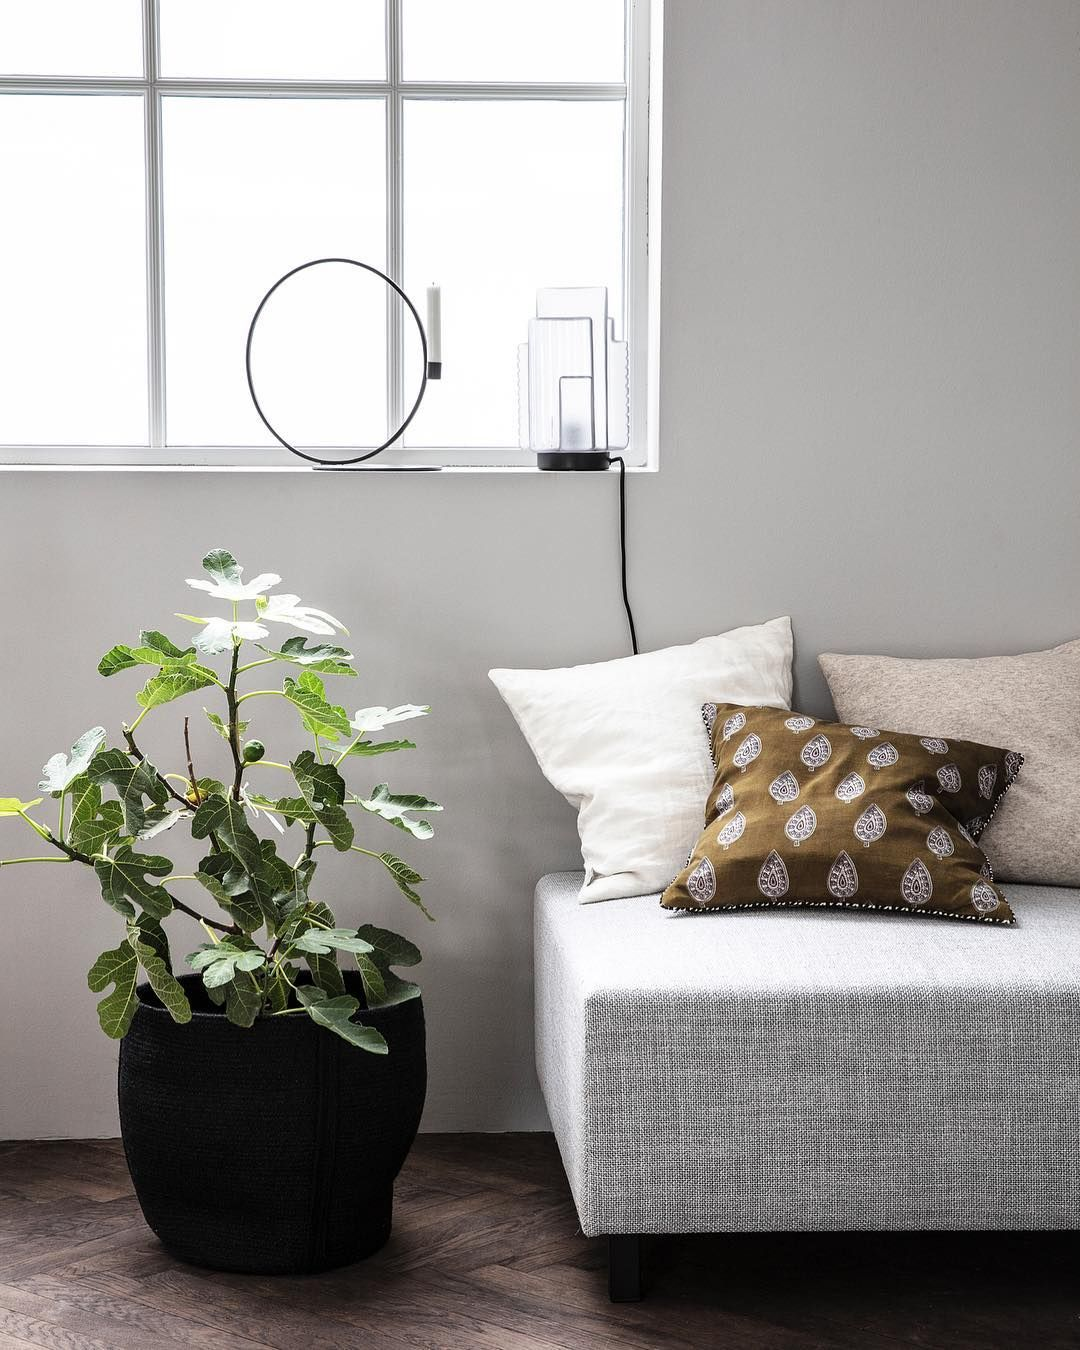 How To Decorate Your Home With Personality: Look Out For Items With Eye-catching Shapes To Create Personality To Your Home Décor